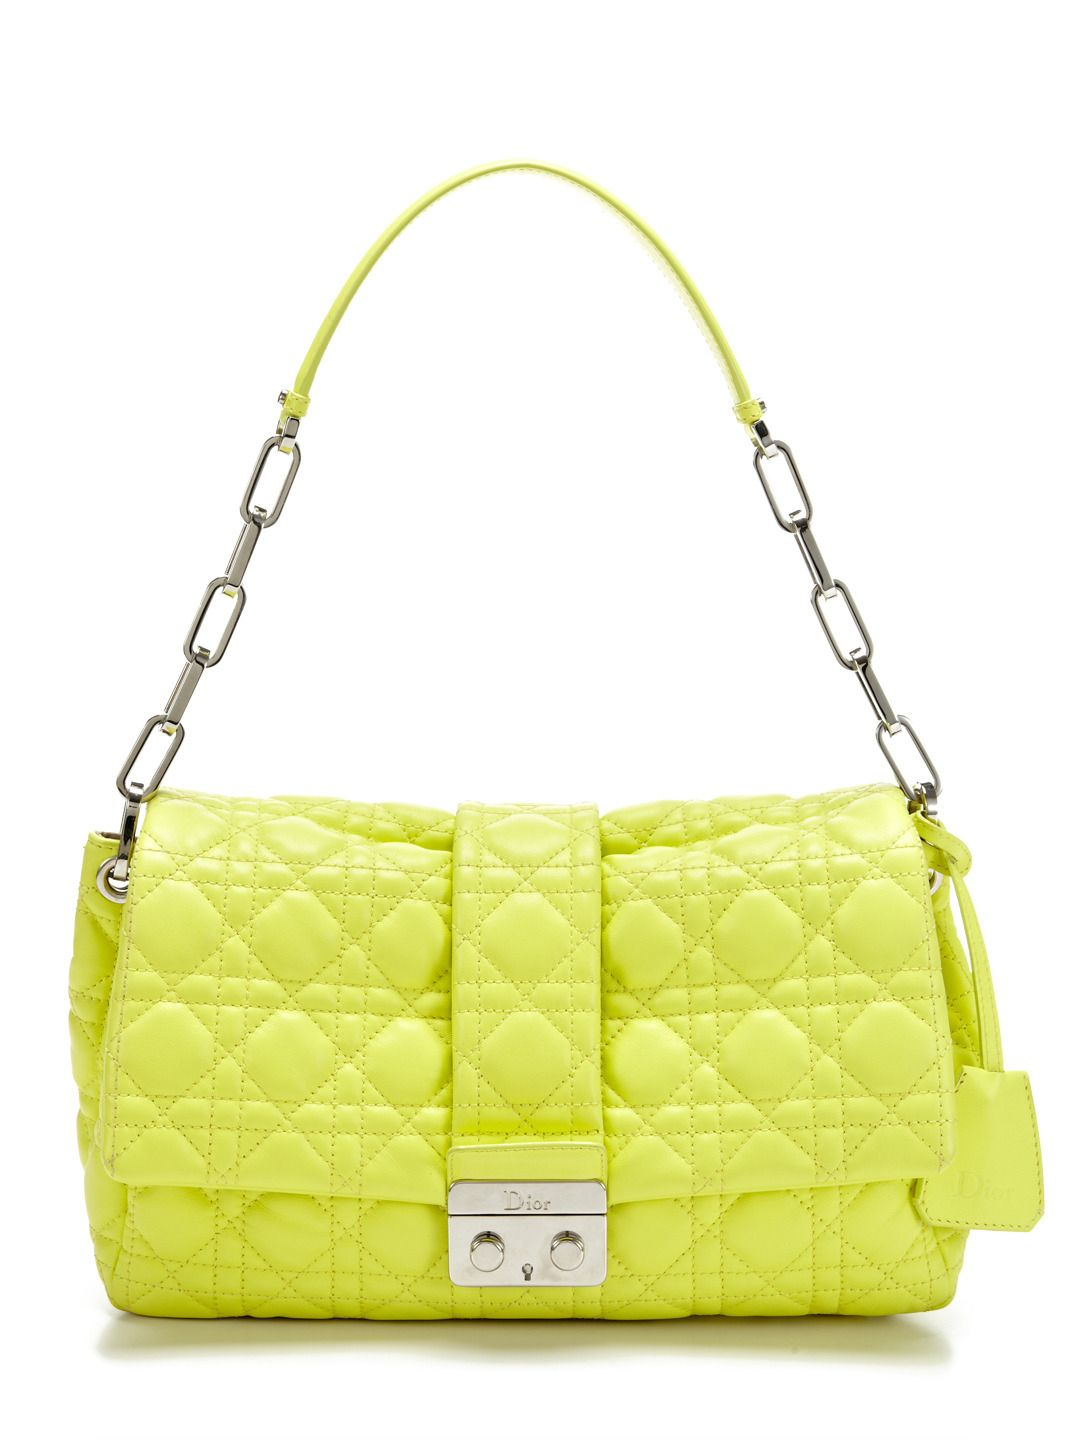 8294ce1fe23f Sorbet Yellow Miss Dior Flap Bag by Christian Dior at Gilt ...